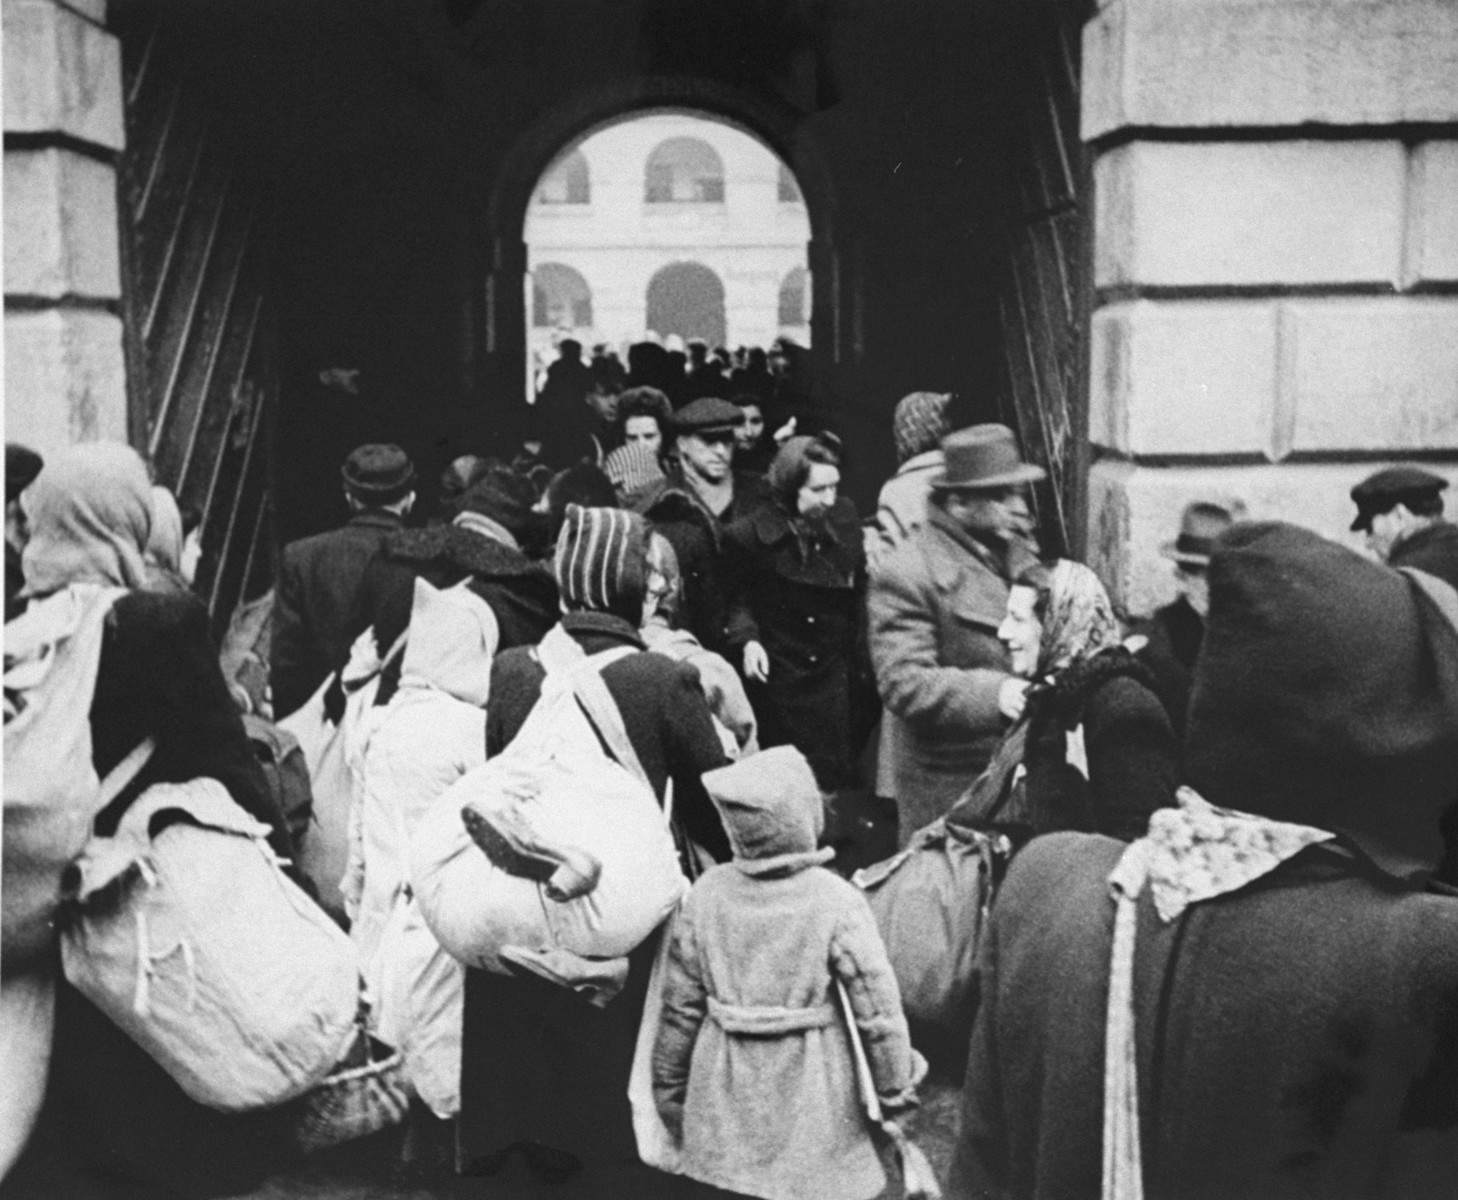 A large group of Dutch Jews who have just arrived in Theresienstadt are herded through a stone archway into the camp. [oversized photo]